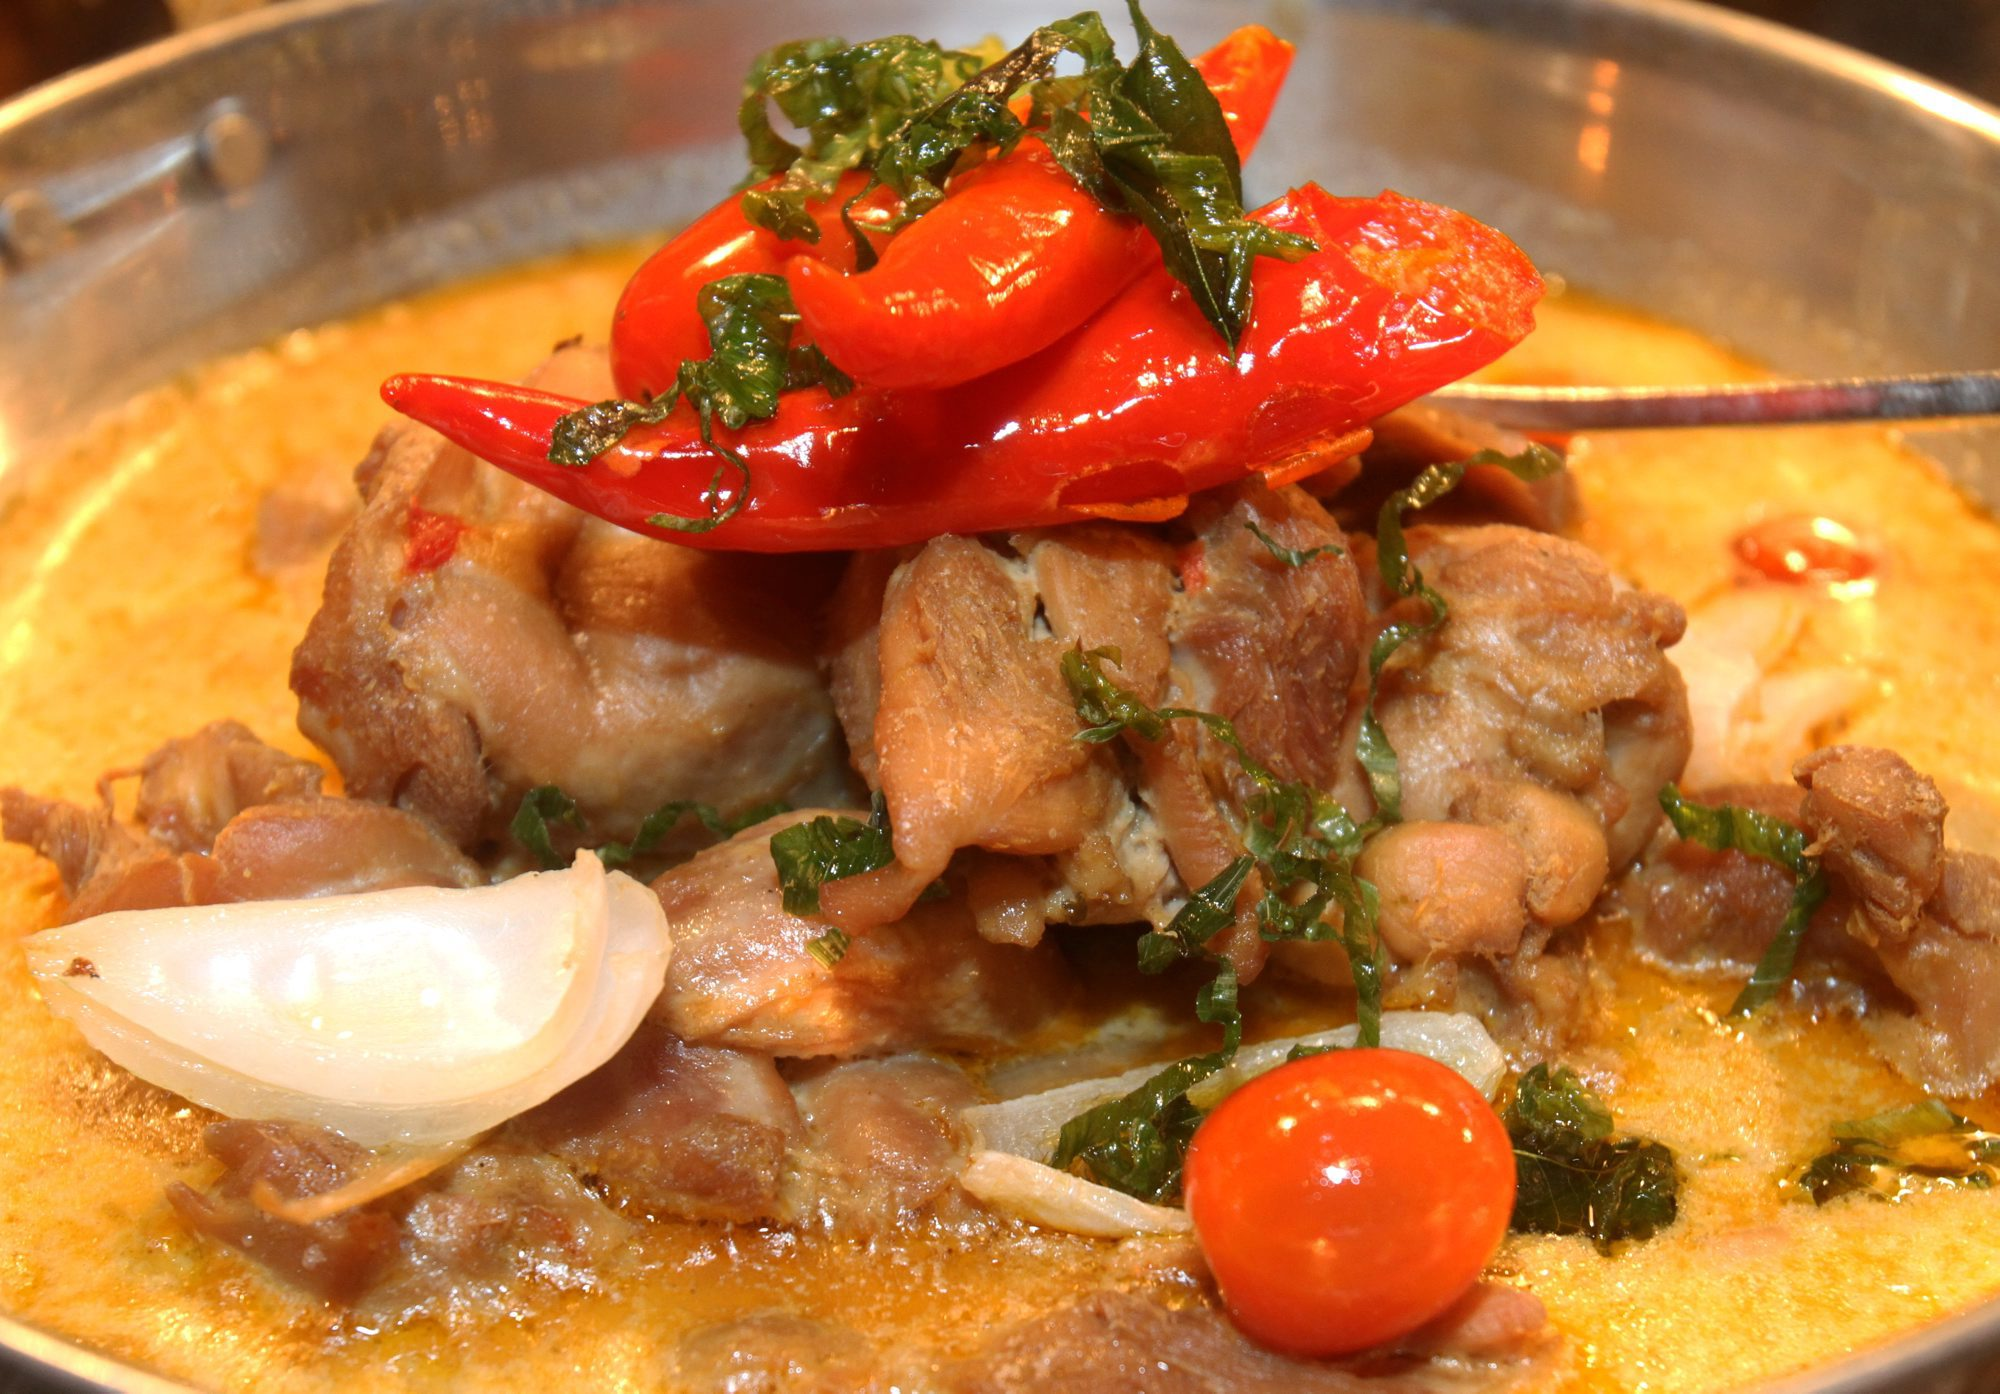 Ayam Kurma Seri Braised Chicken Lemongrass from Mosaic